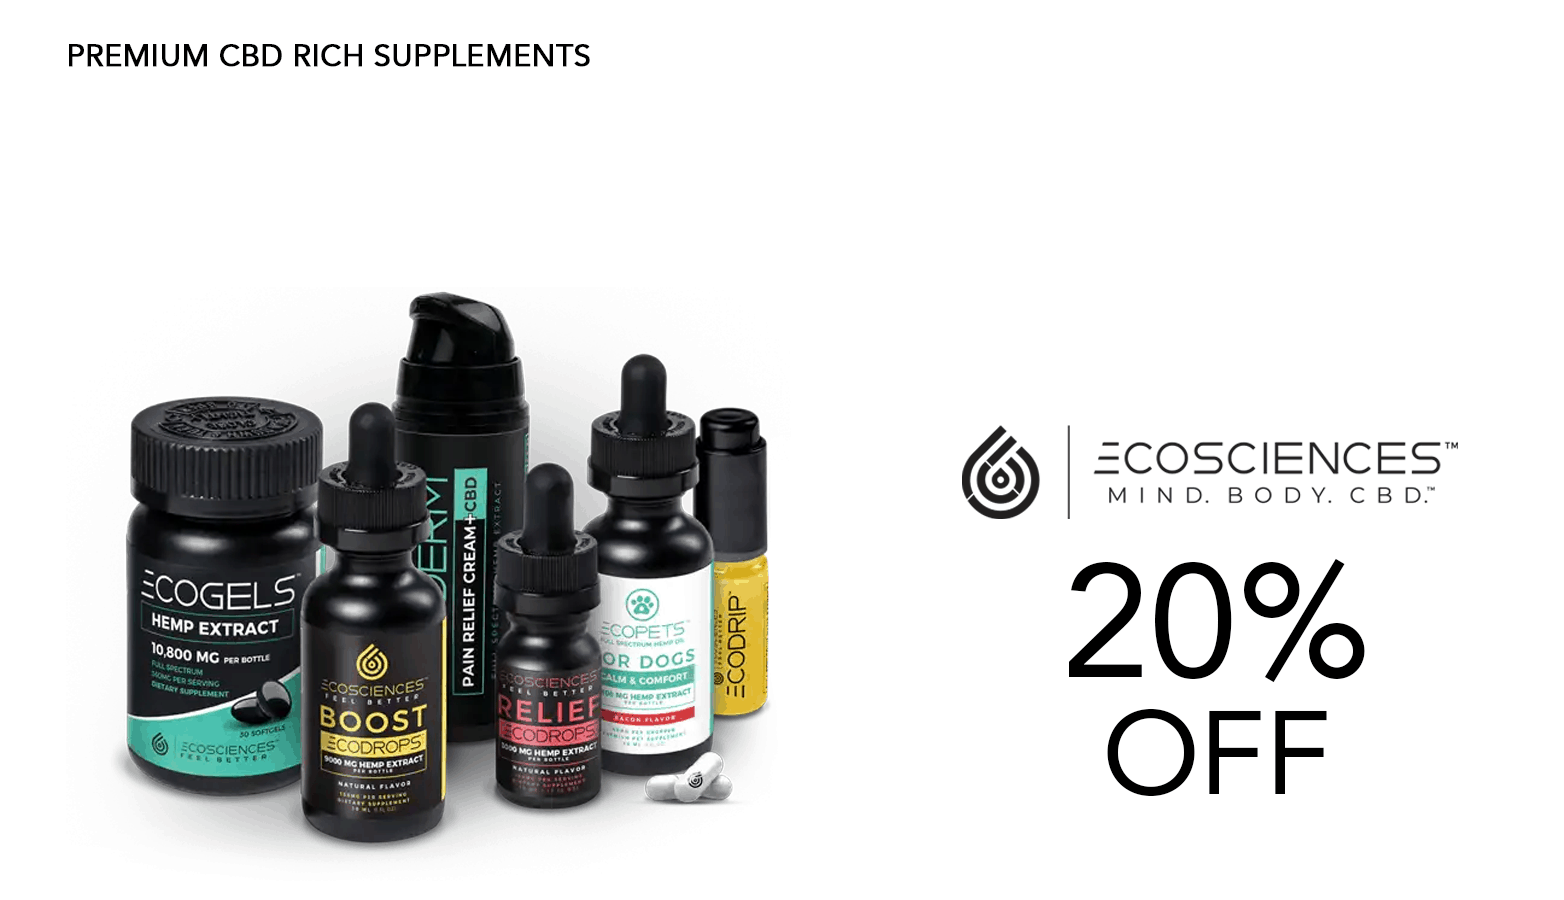 EcoSciences CBD Coupon Code Discount Website